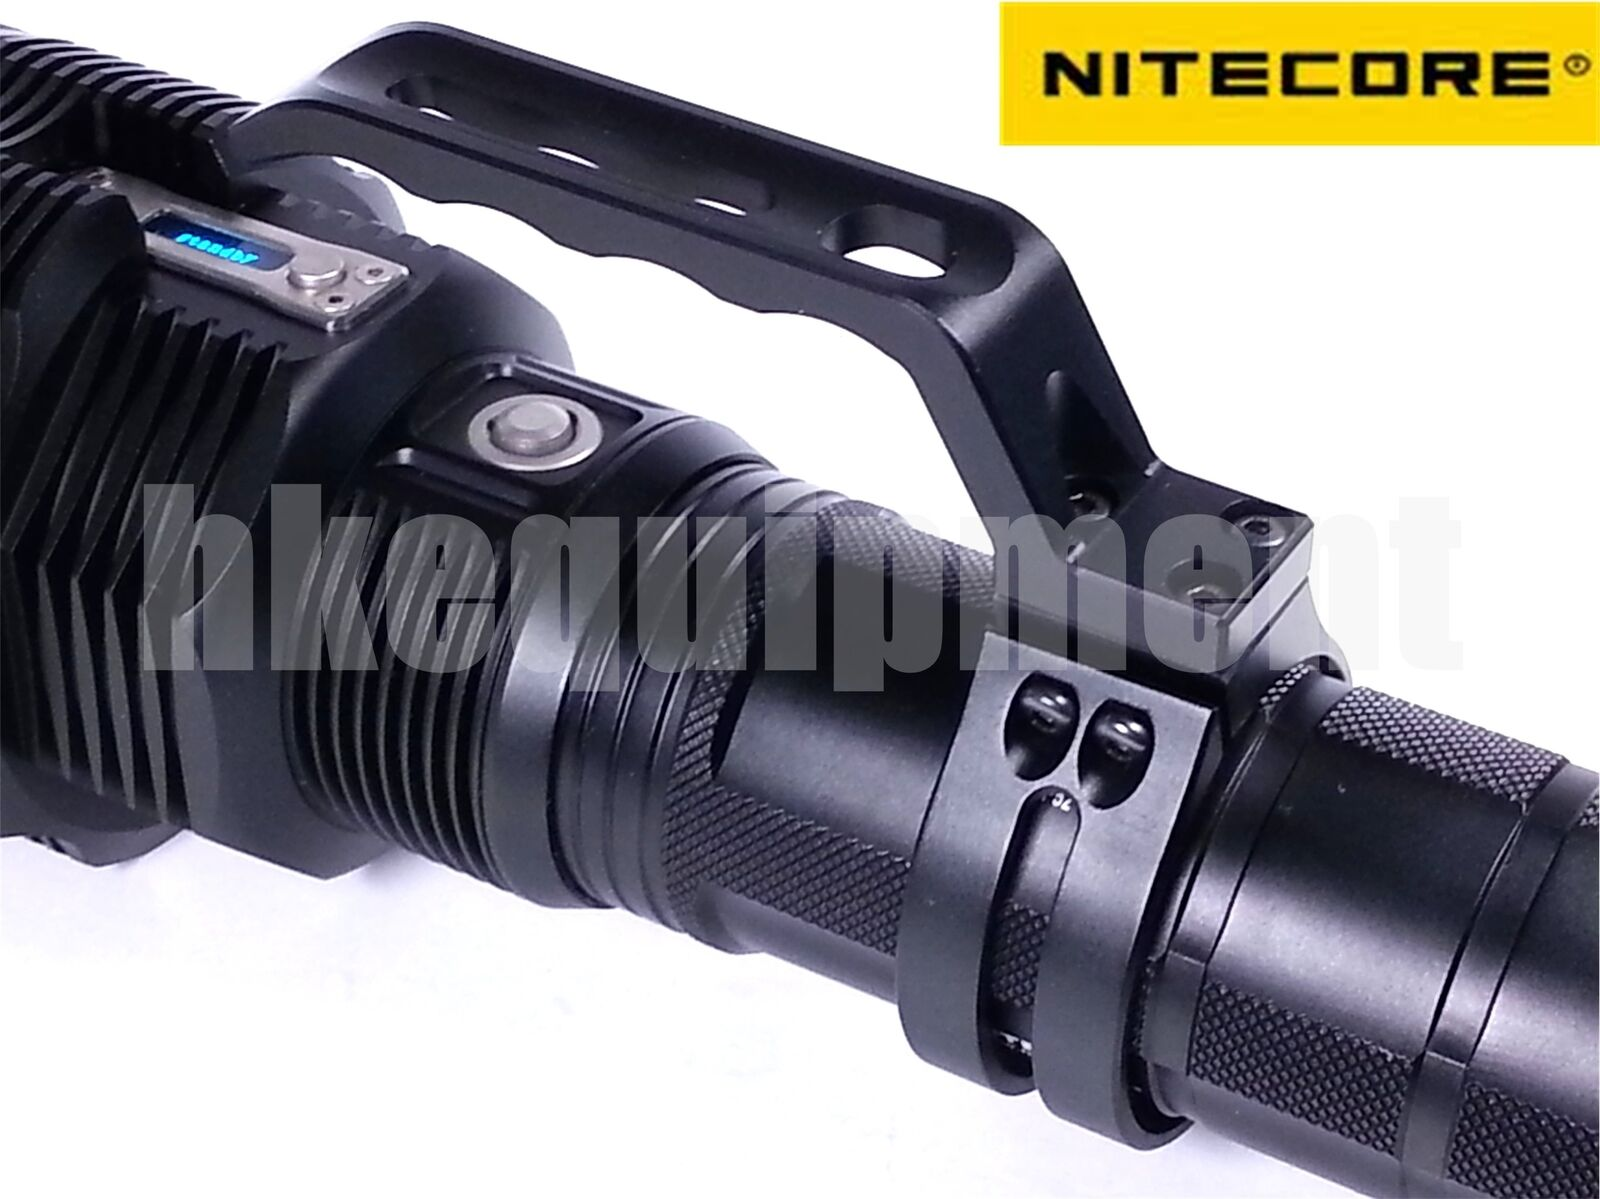 Nitecore NHM10 TM Flashlight Mount TM06, TM11, TM15, TM26, TM28, TM36